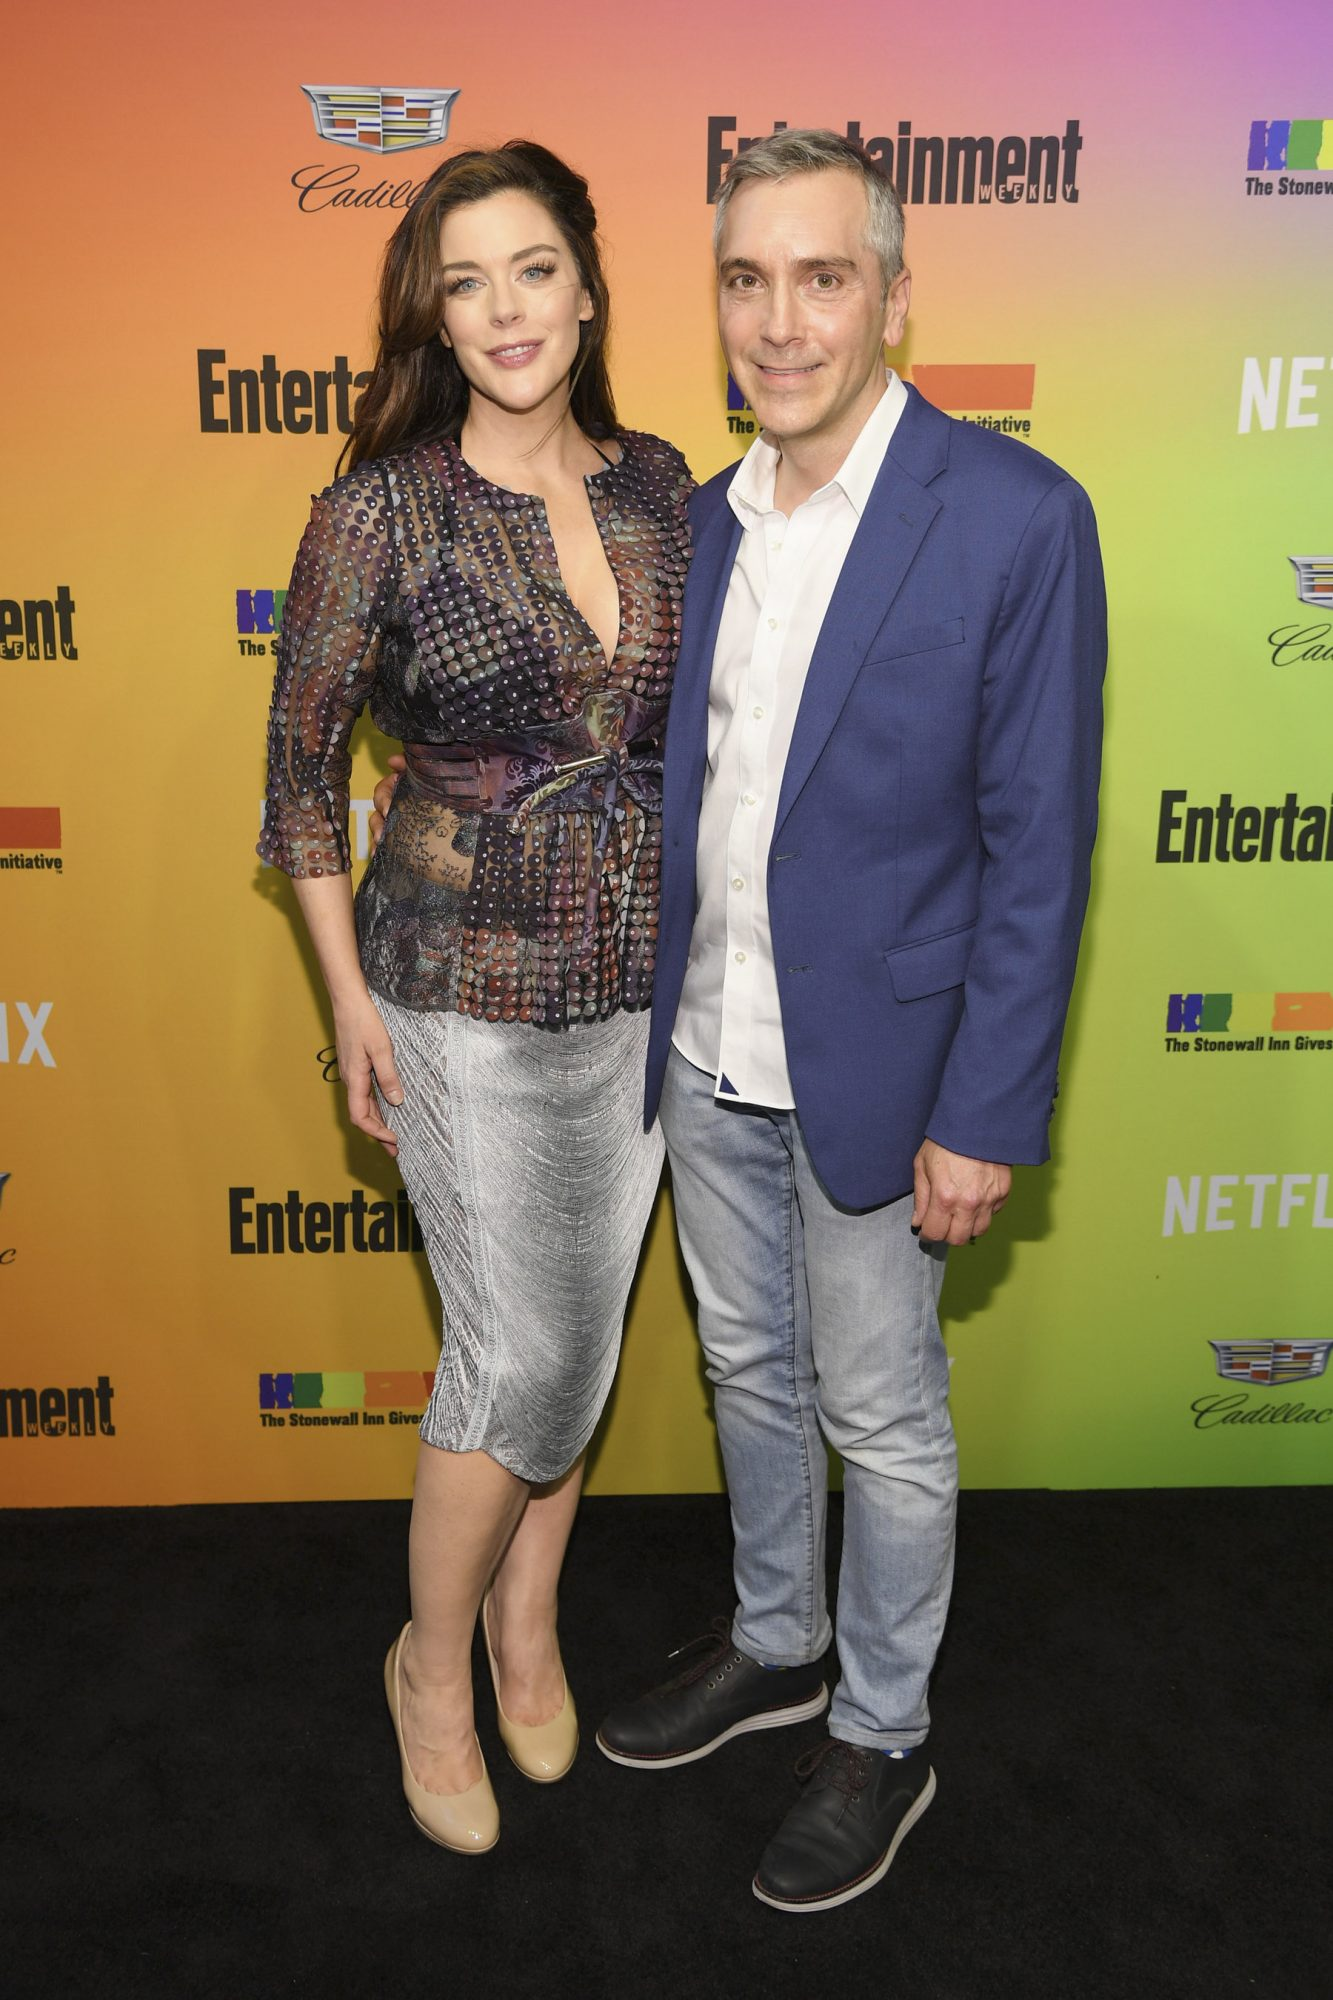 NEW YORK, NEW YORK - JUNE 05: Kim Director and Scott Lowell attend as Entertainment Weekly Celebrates Its Annual LGBTQ Issue at the Stonewall Inn on June 05, 2019 in New York City. (Photo by Dimitrios Kambouris/Getty Images for Entertainment Weekly)